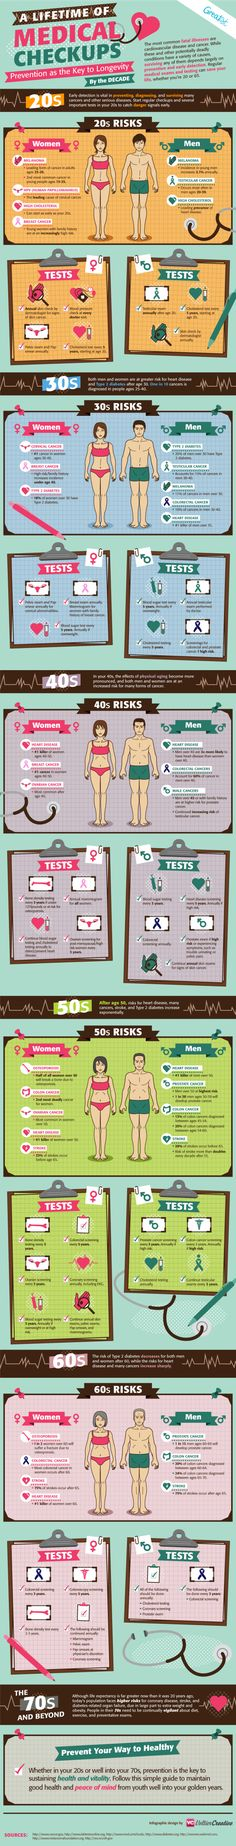 A Lifetime of Medical Checkups [infographic]